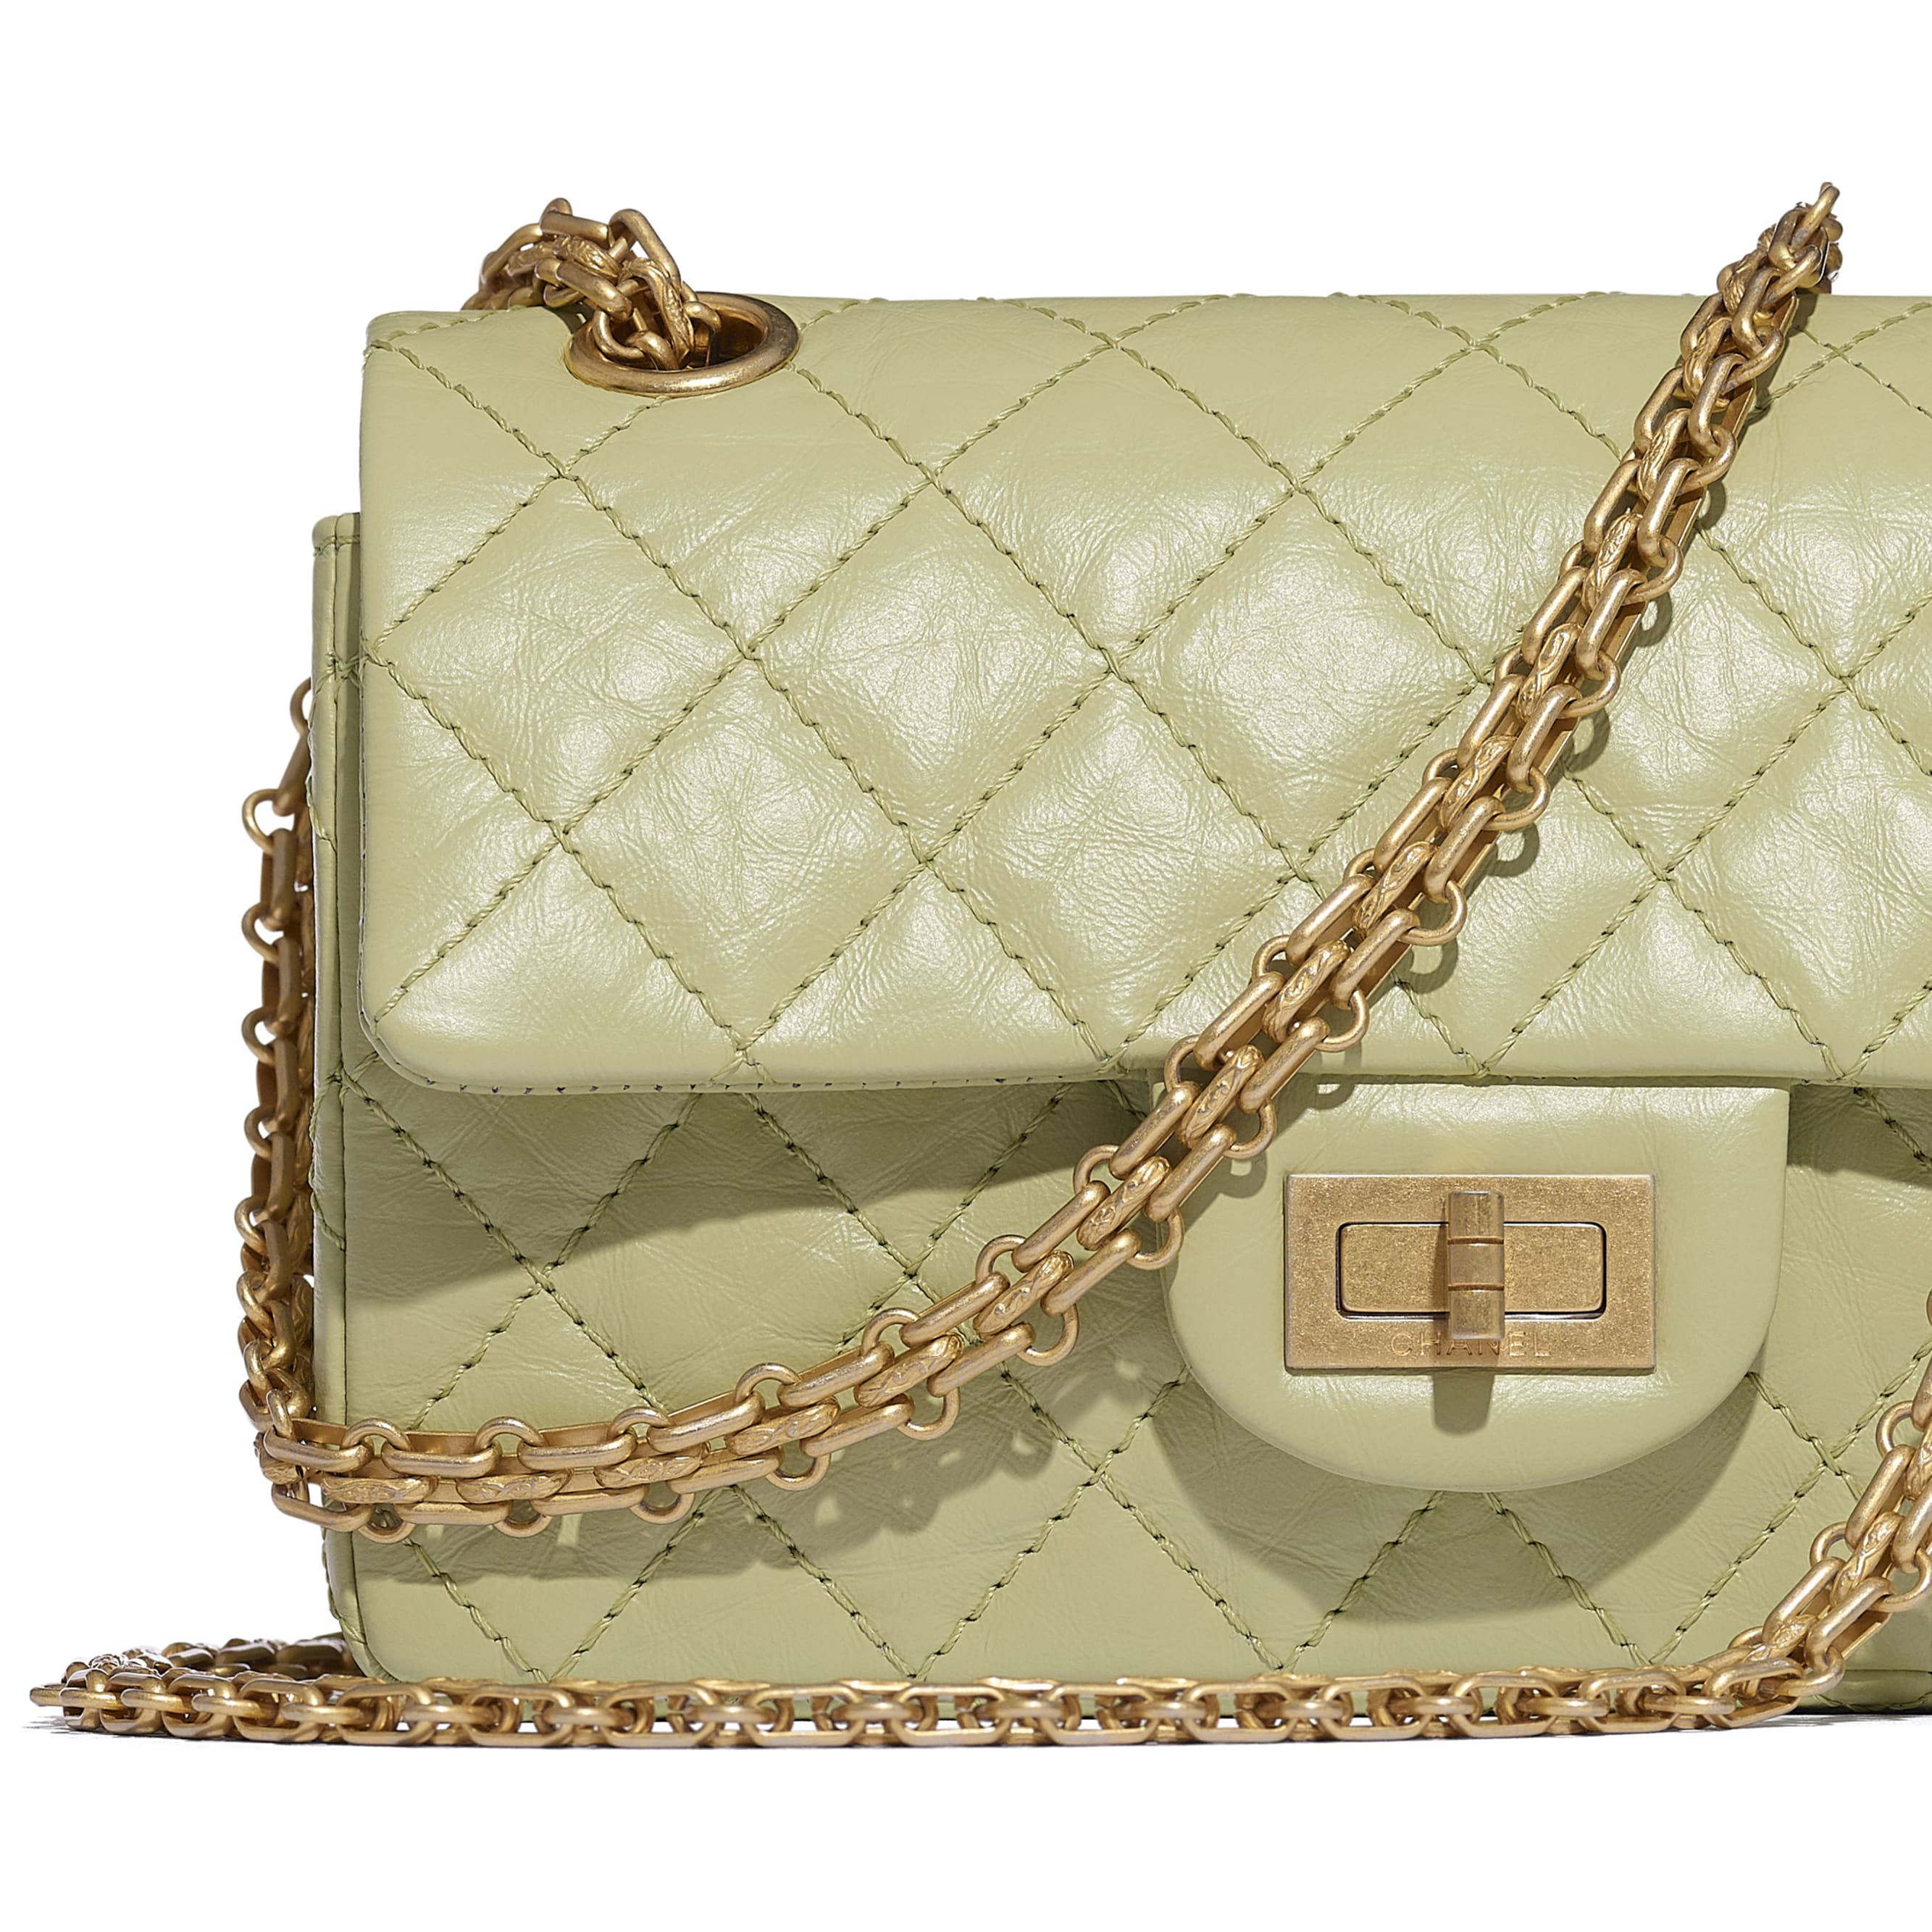 Small 2.55 Handbag - Green - Aged Calfskin & Gold-Tone Metal - CHANEL - Extra view - see standard sized version